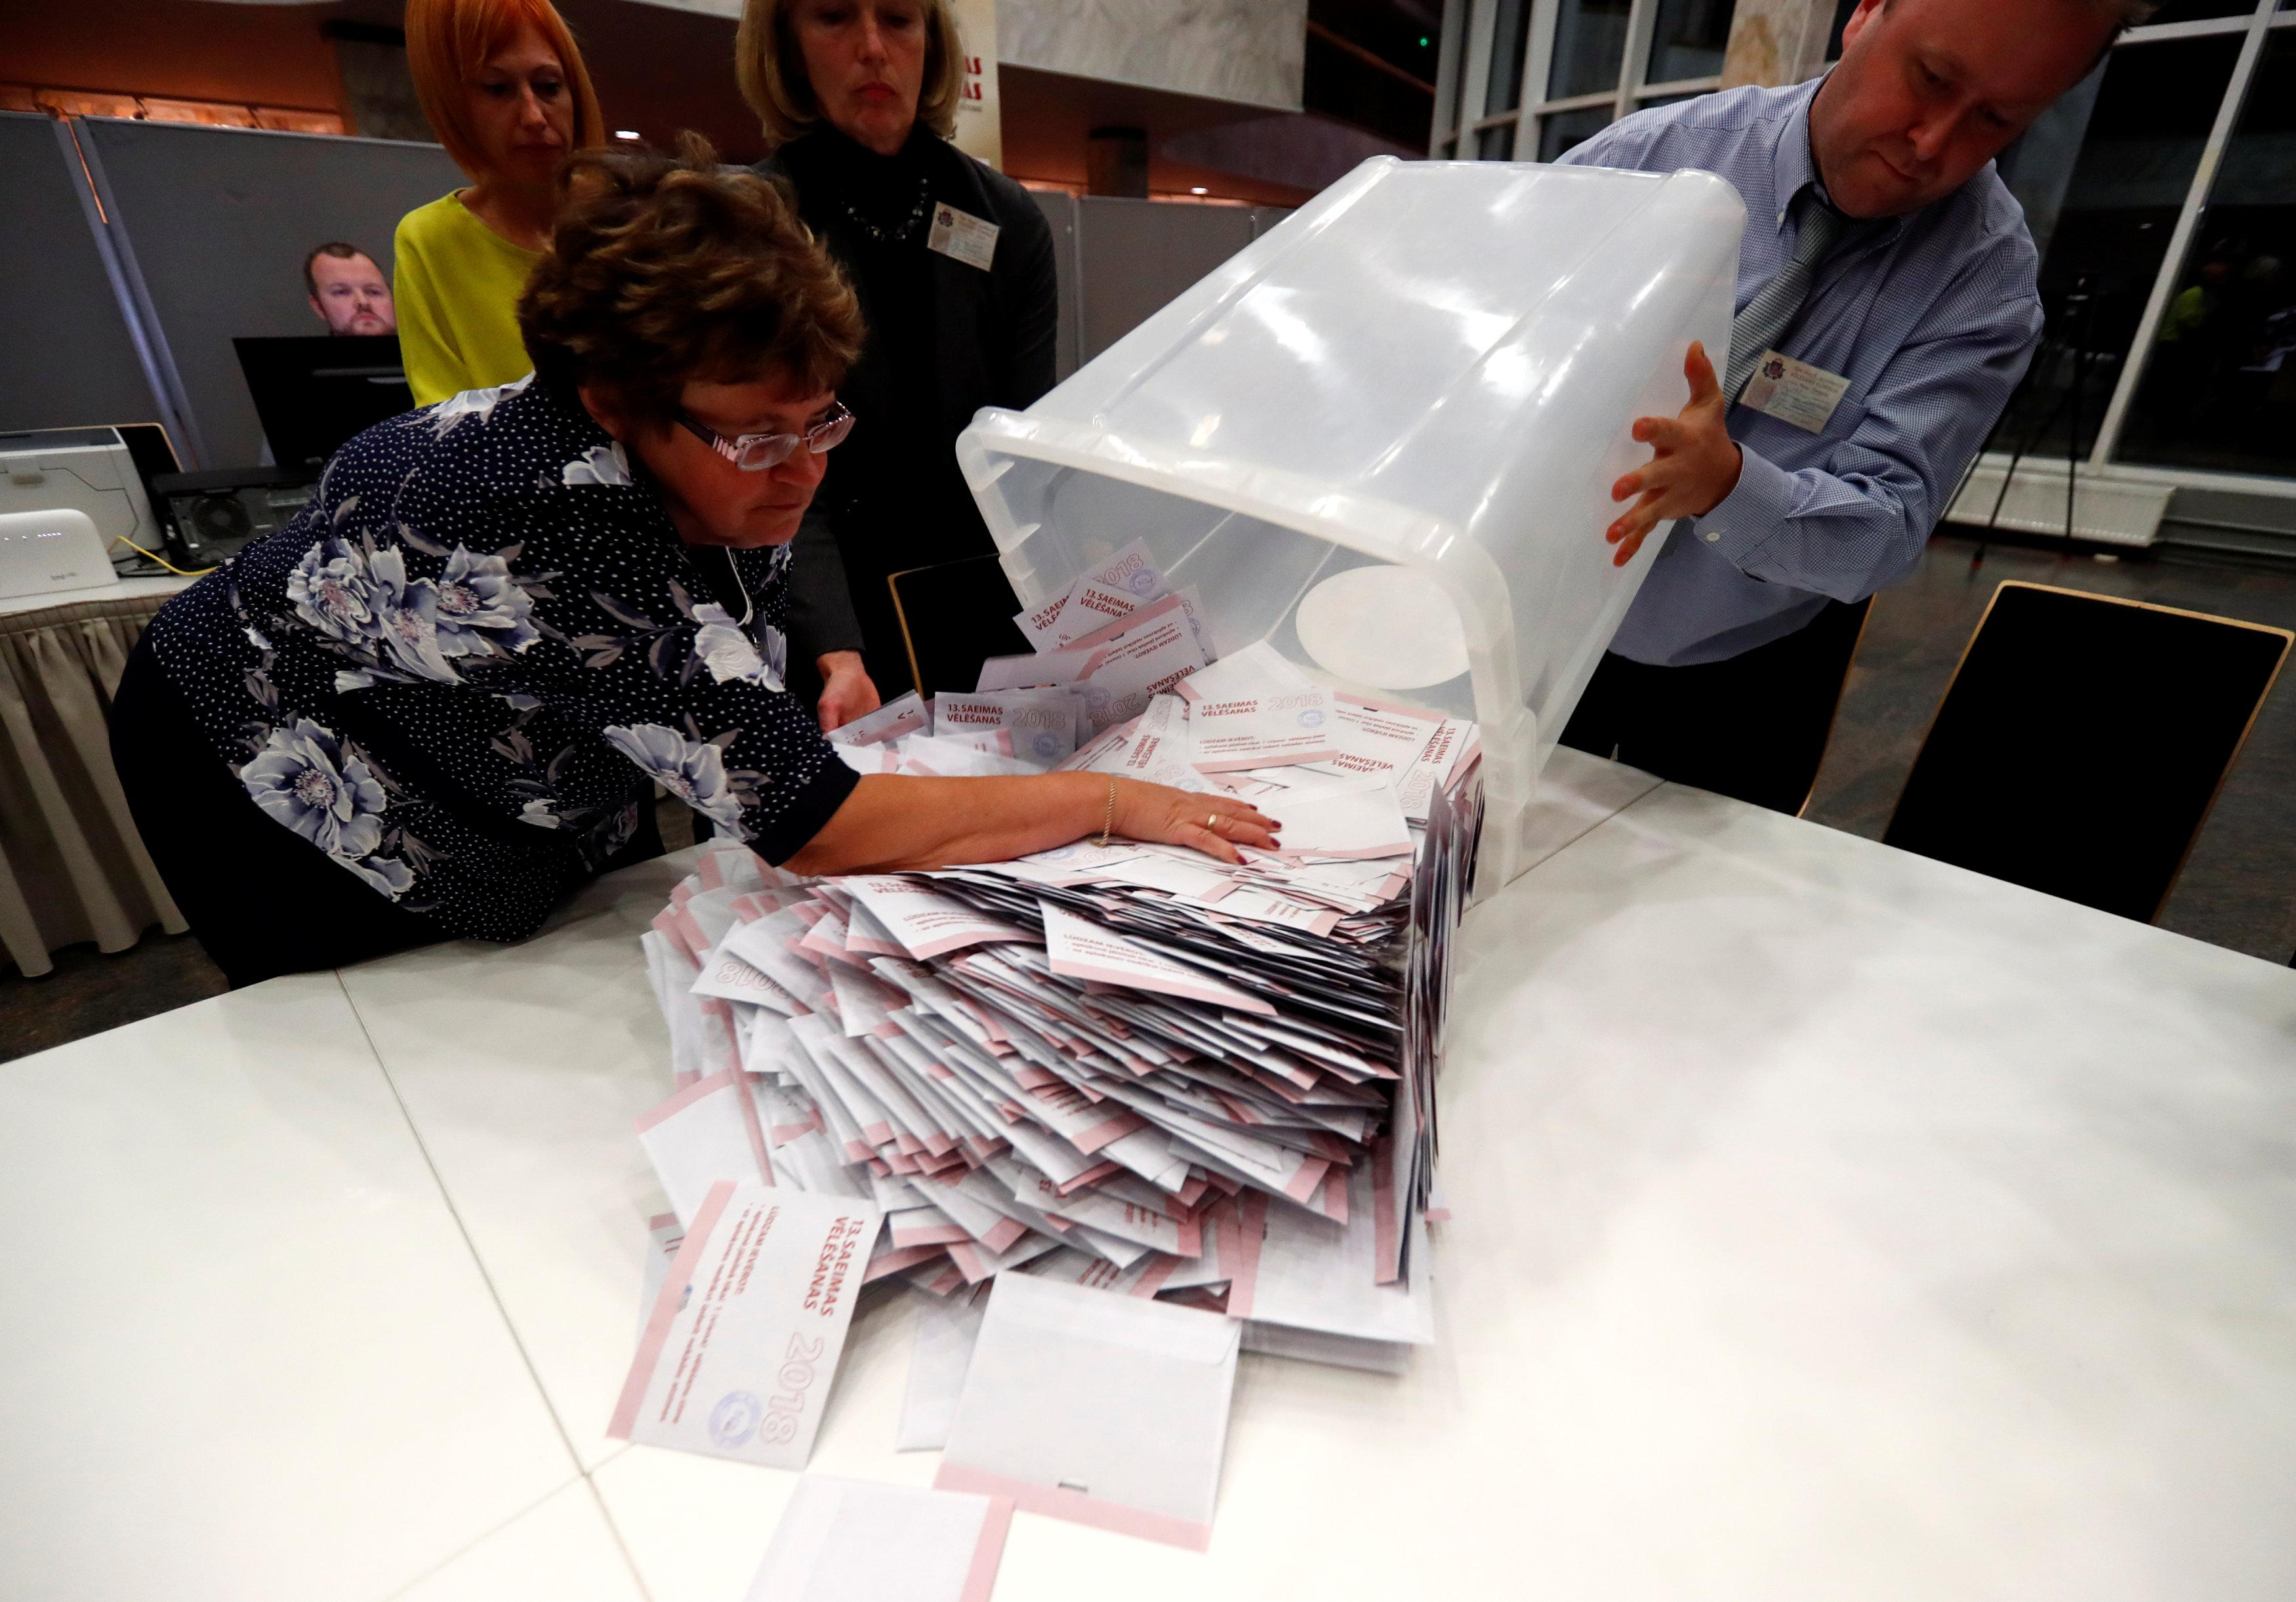 Election officials open ballot box during a general election in Riga, Latvia October 6, 2018. Ints Kalnins